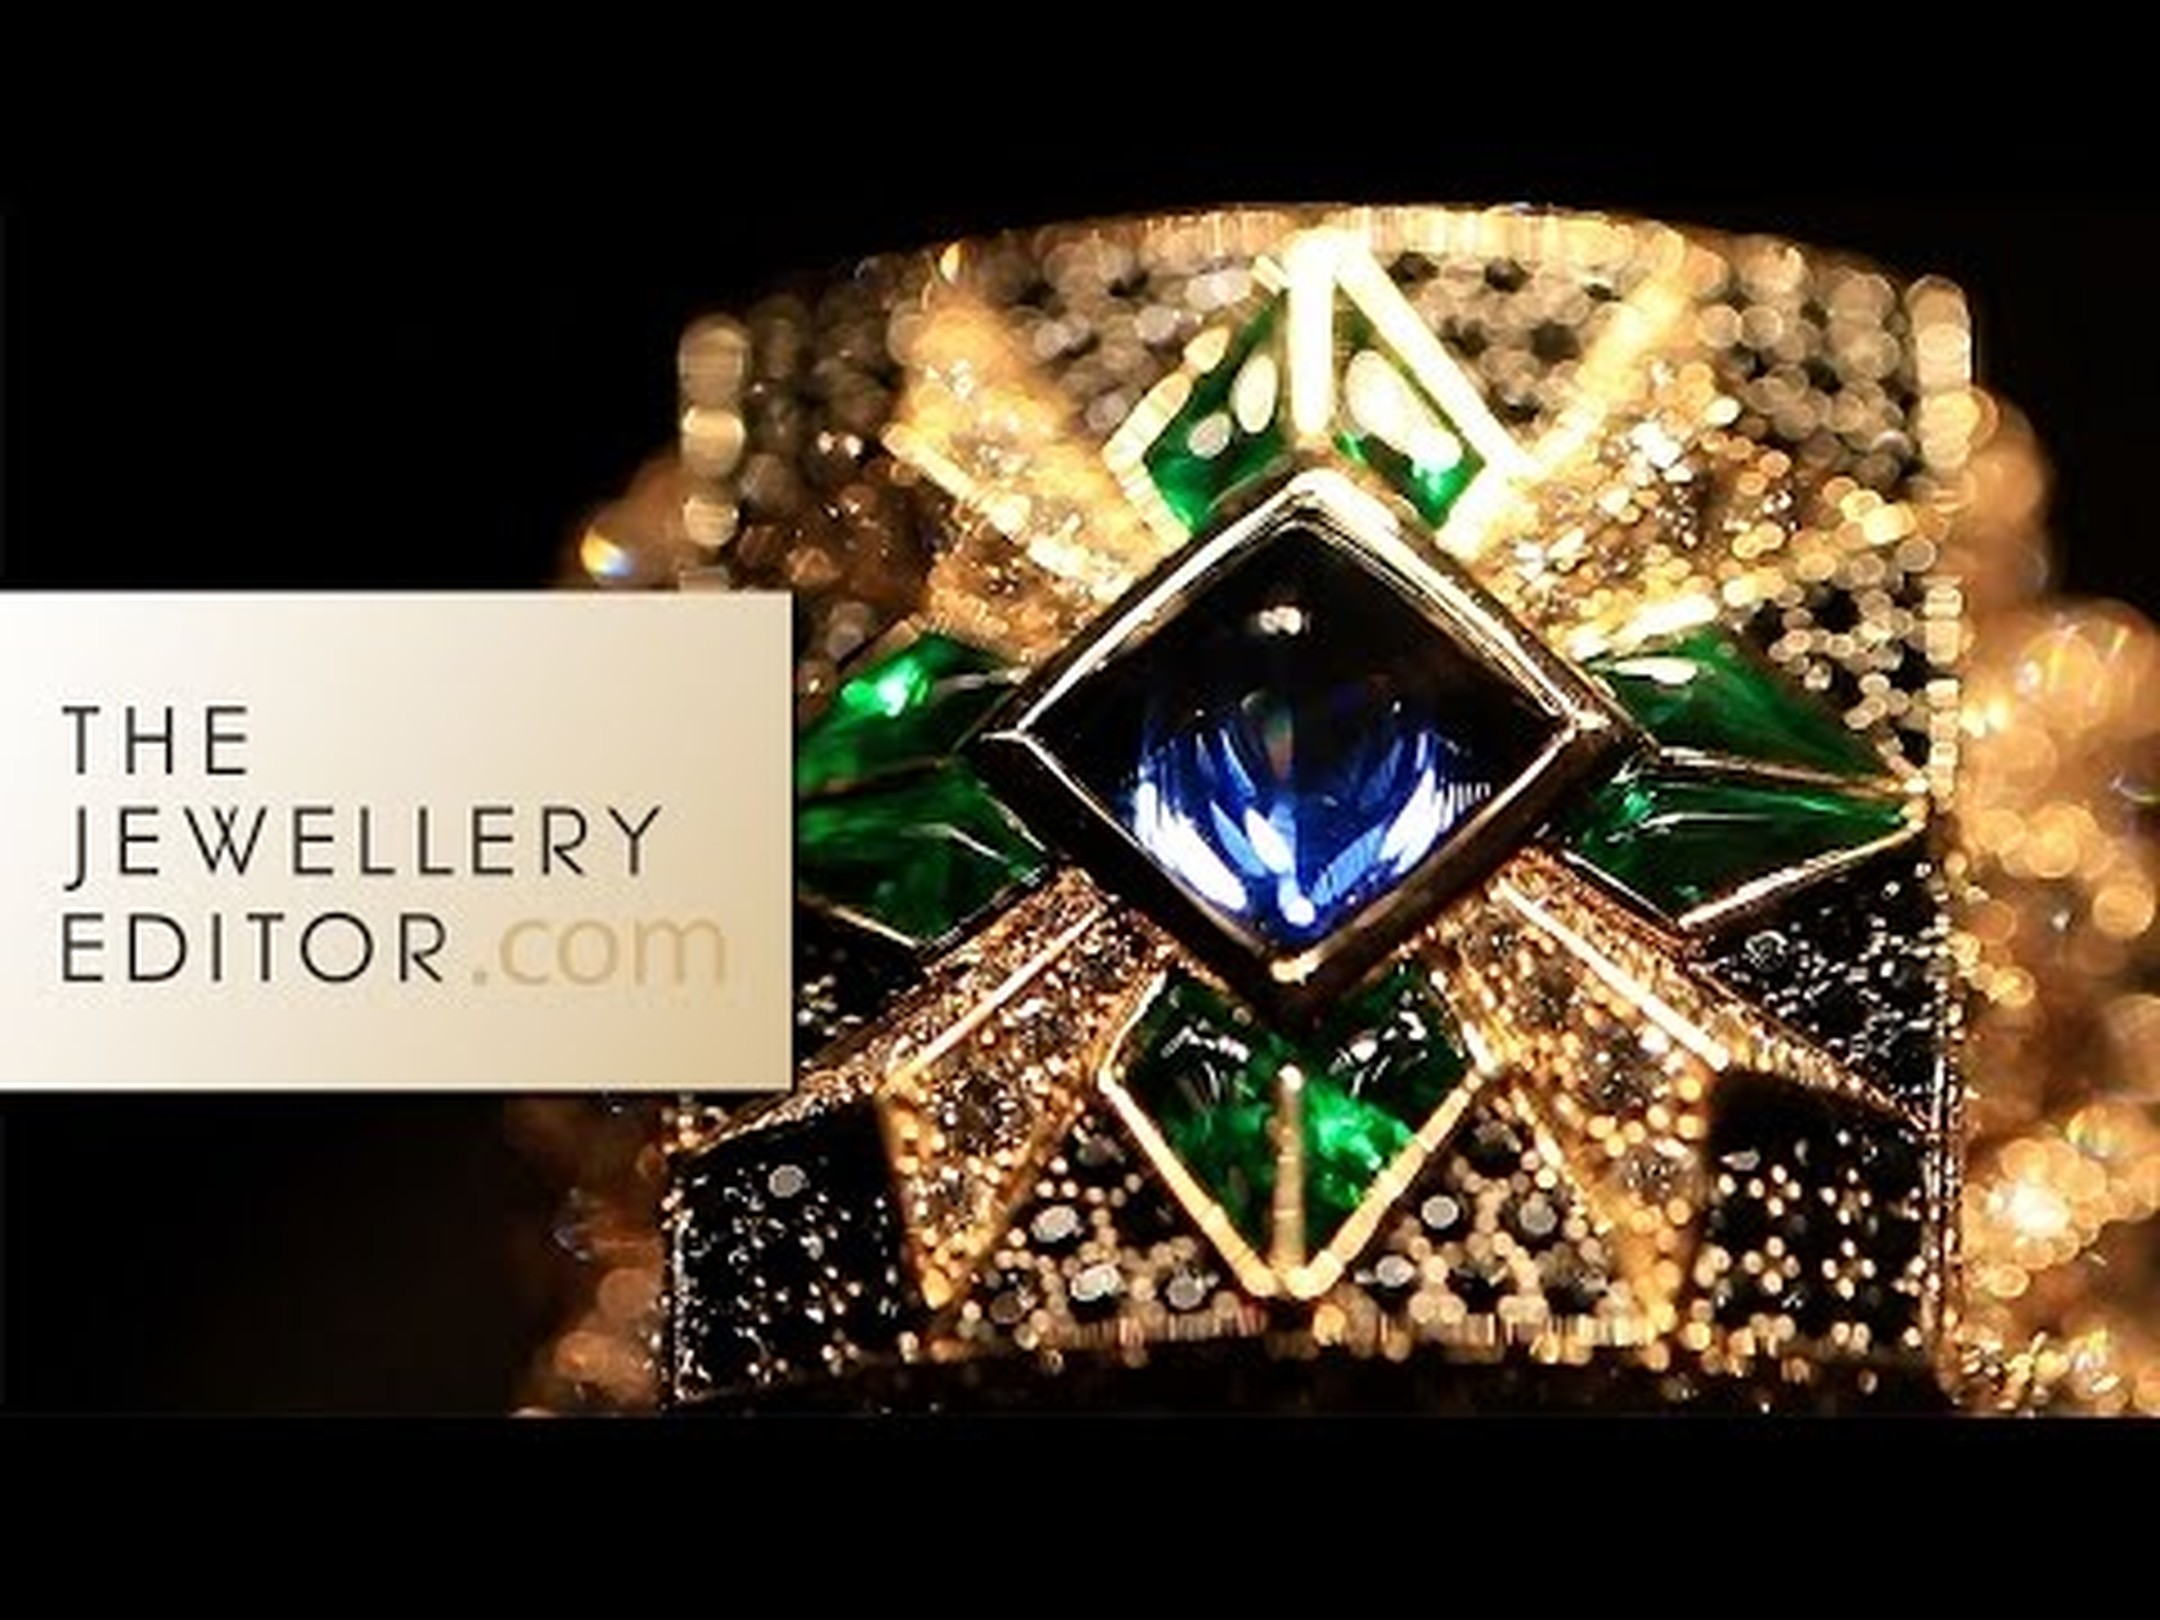 Jewellery mastermind Giampiero Bodino in must watch video